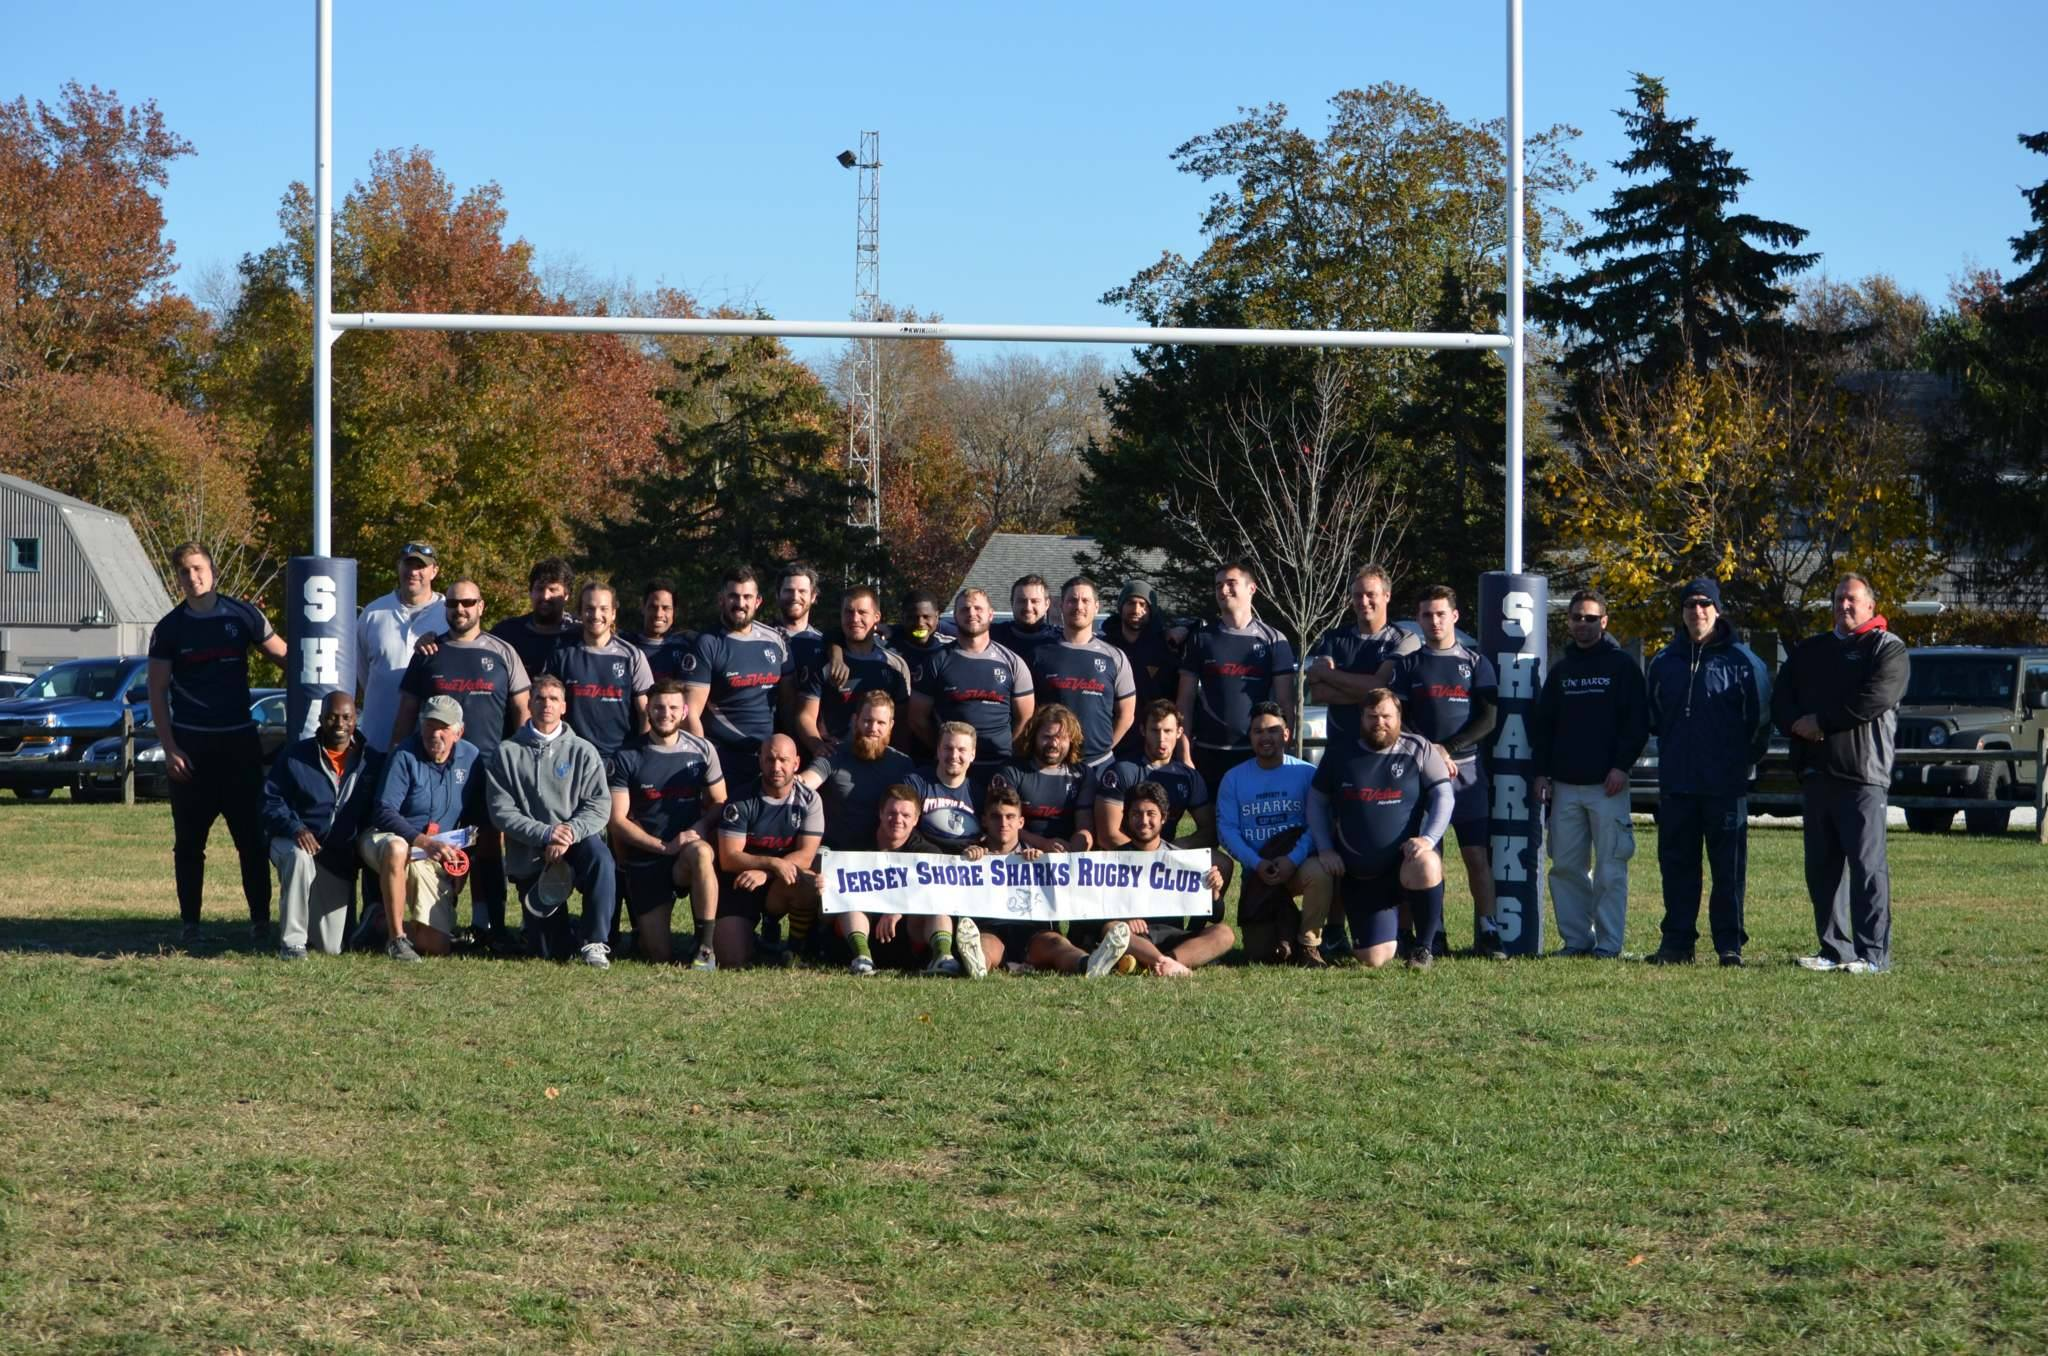 Jersey Shore Sharks Rugby Football Club Members